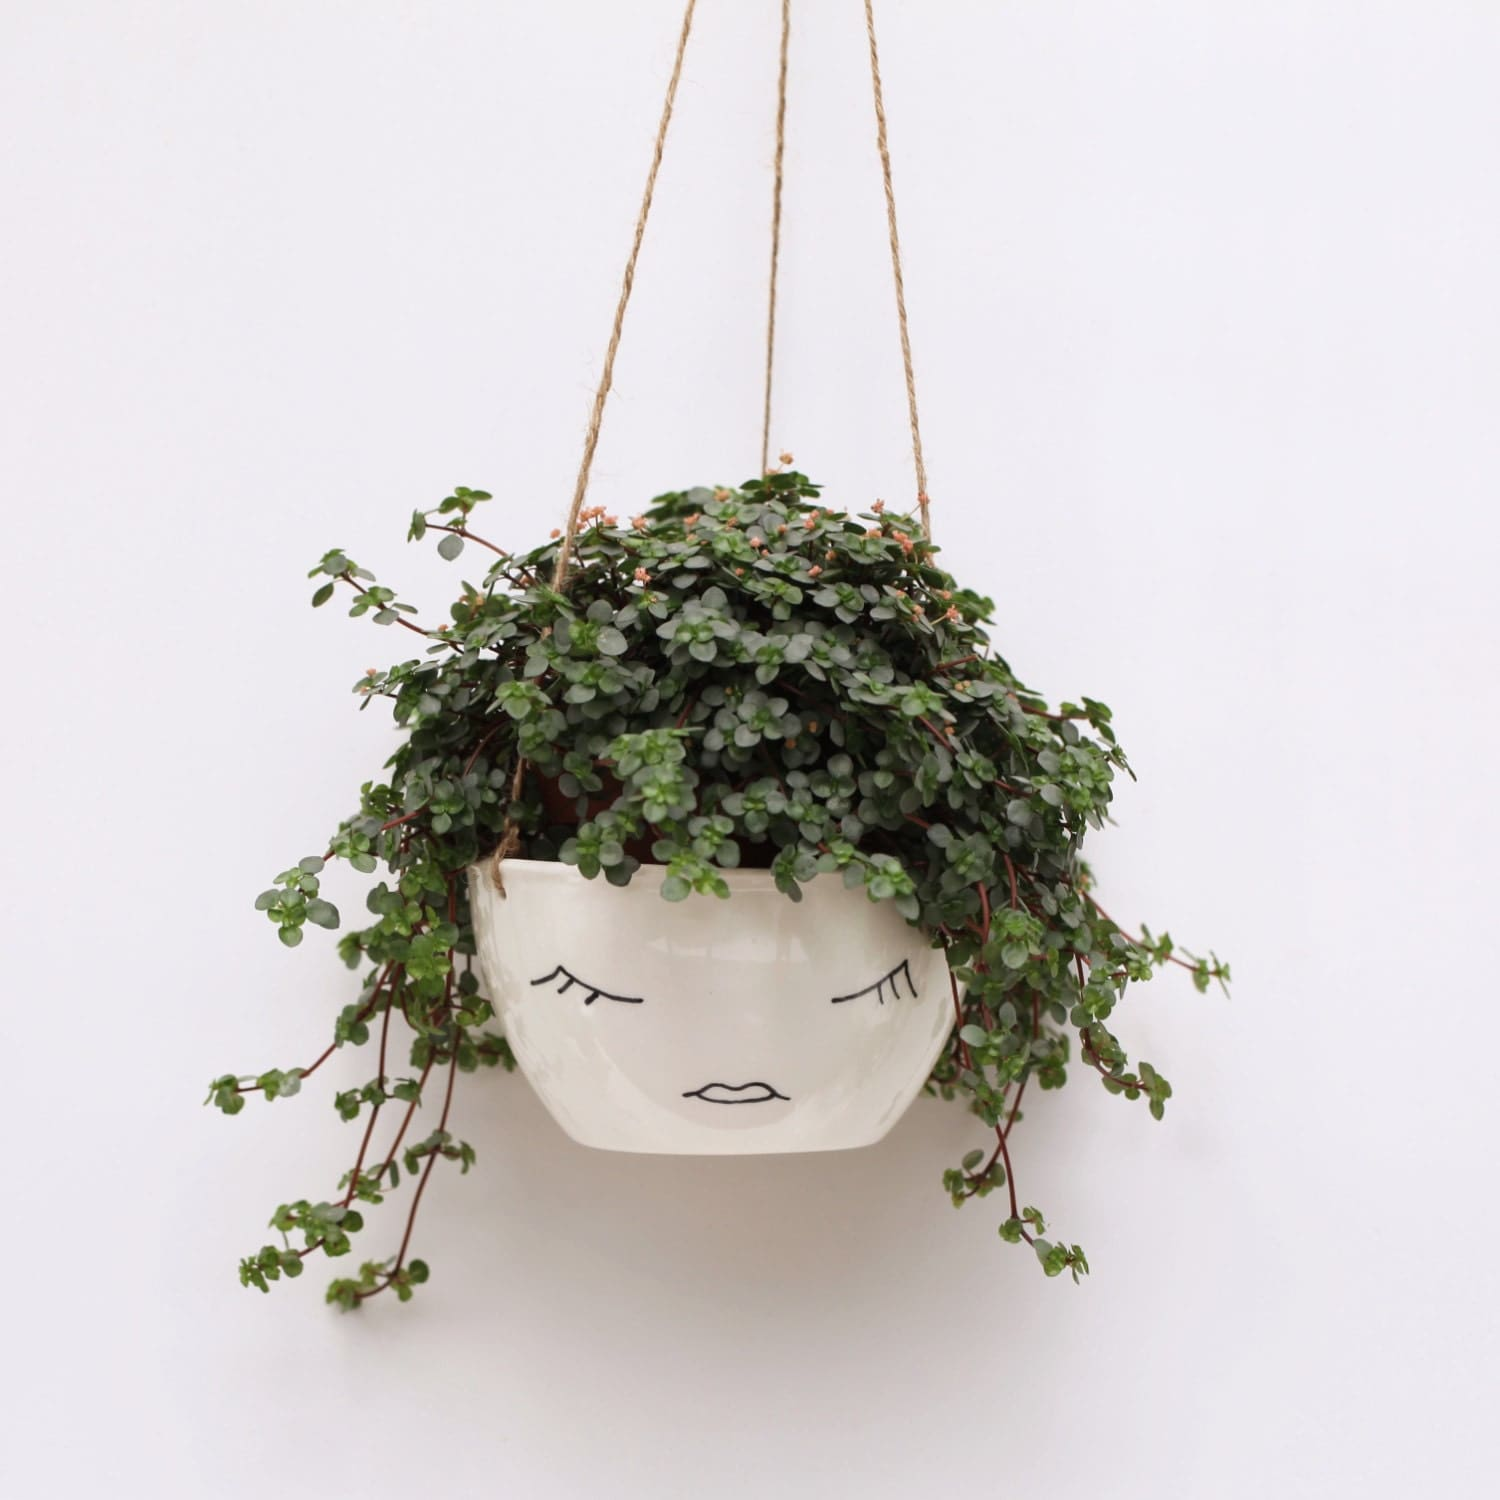 White ceramic hanging planter face plant pot character for Plante a planter